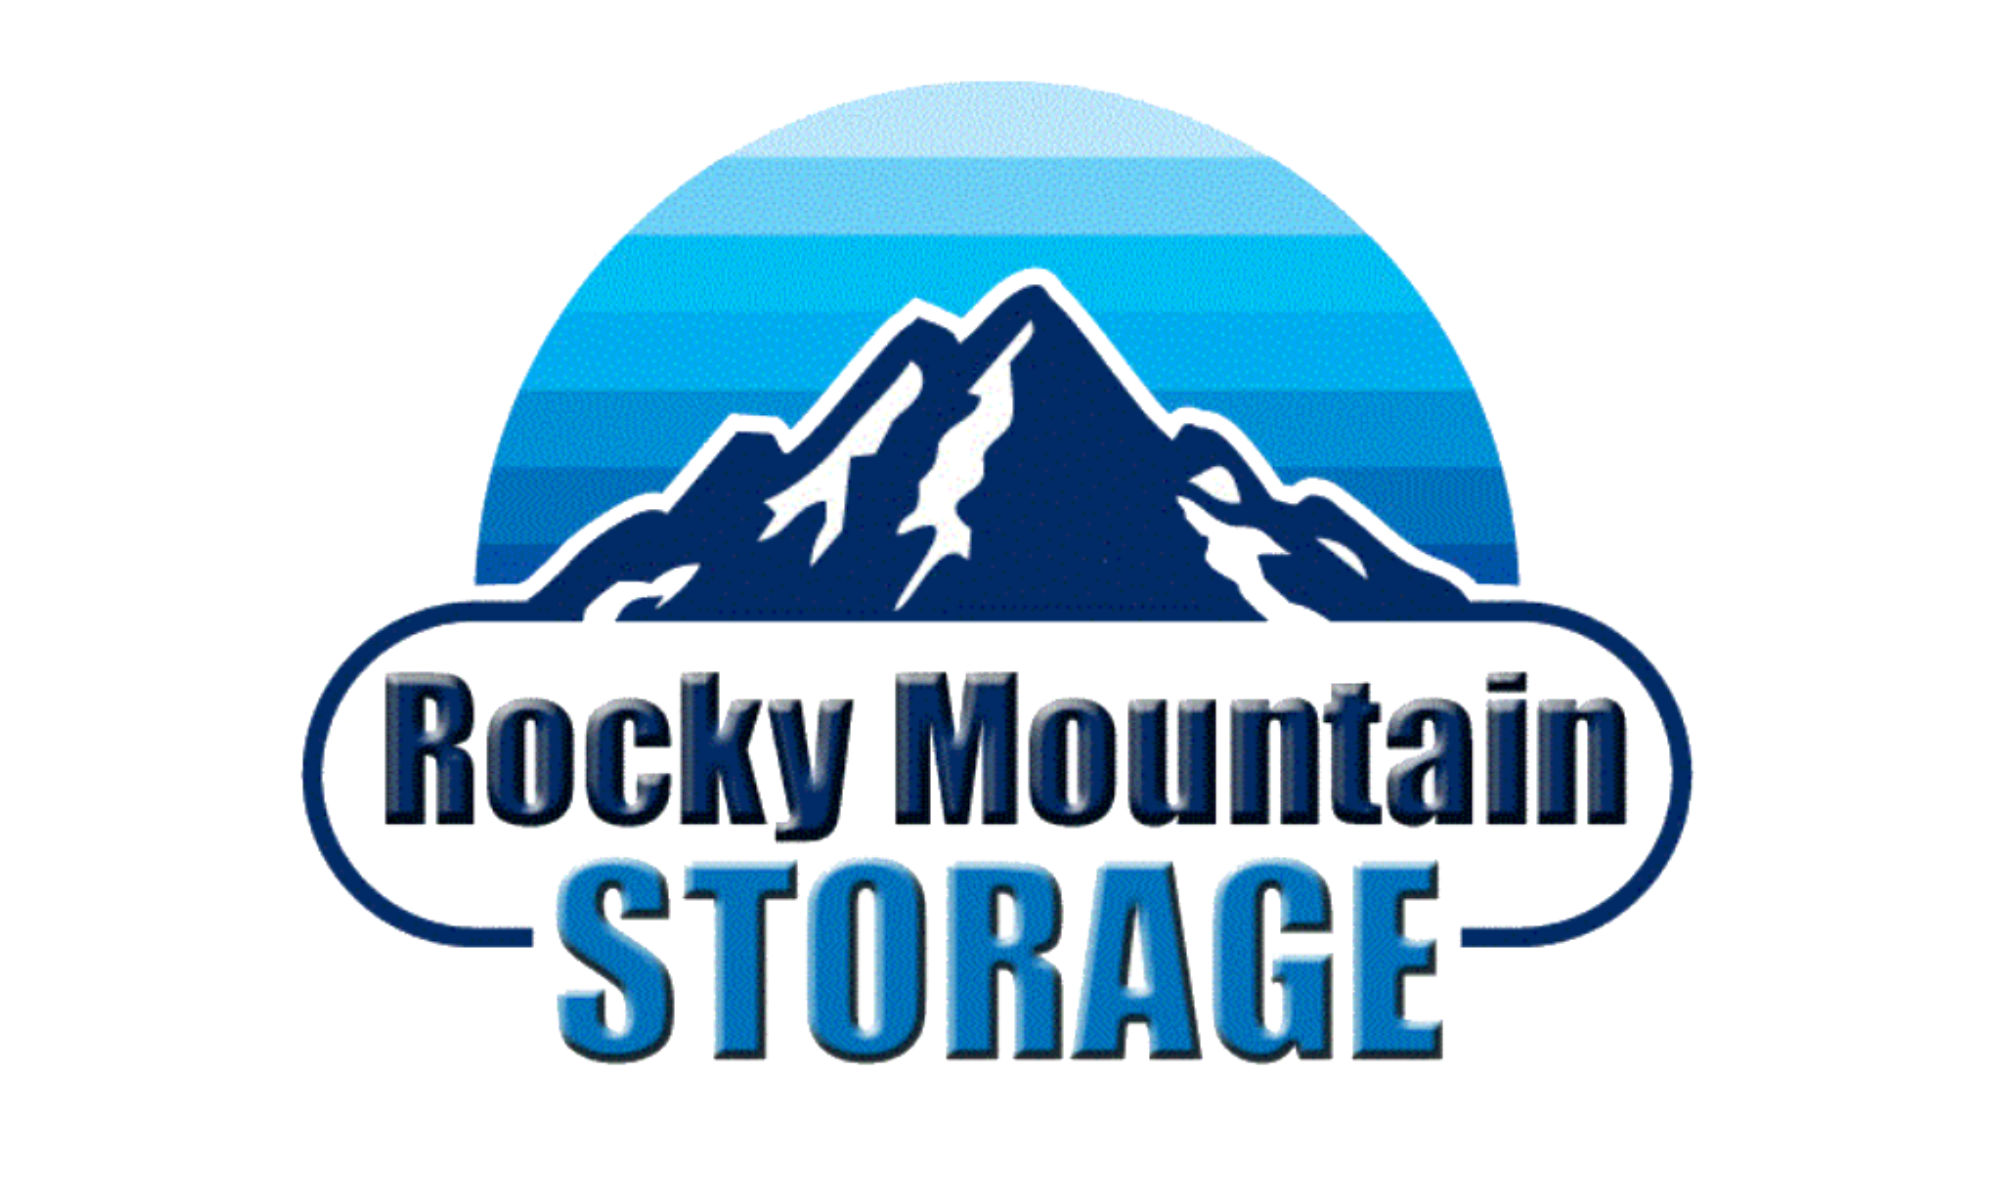 Rocky Mountain Storage